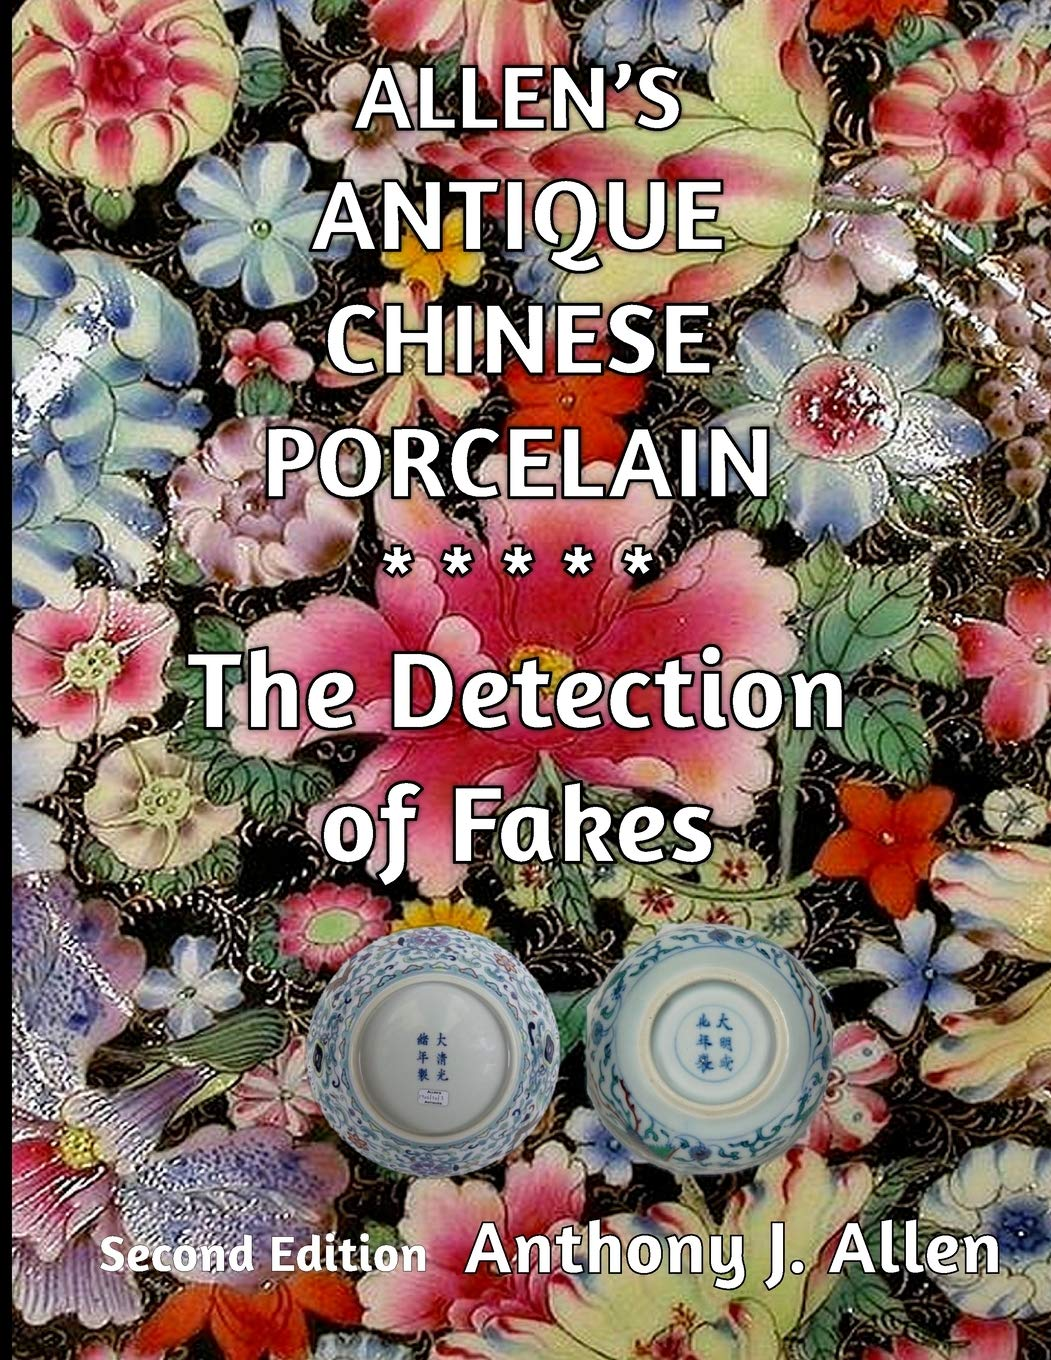 Allen's Antique Chinese Porcelain ***The Detection Of Fakes***  Second Edition